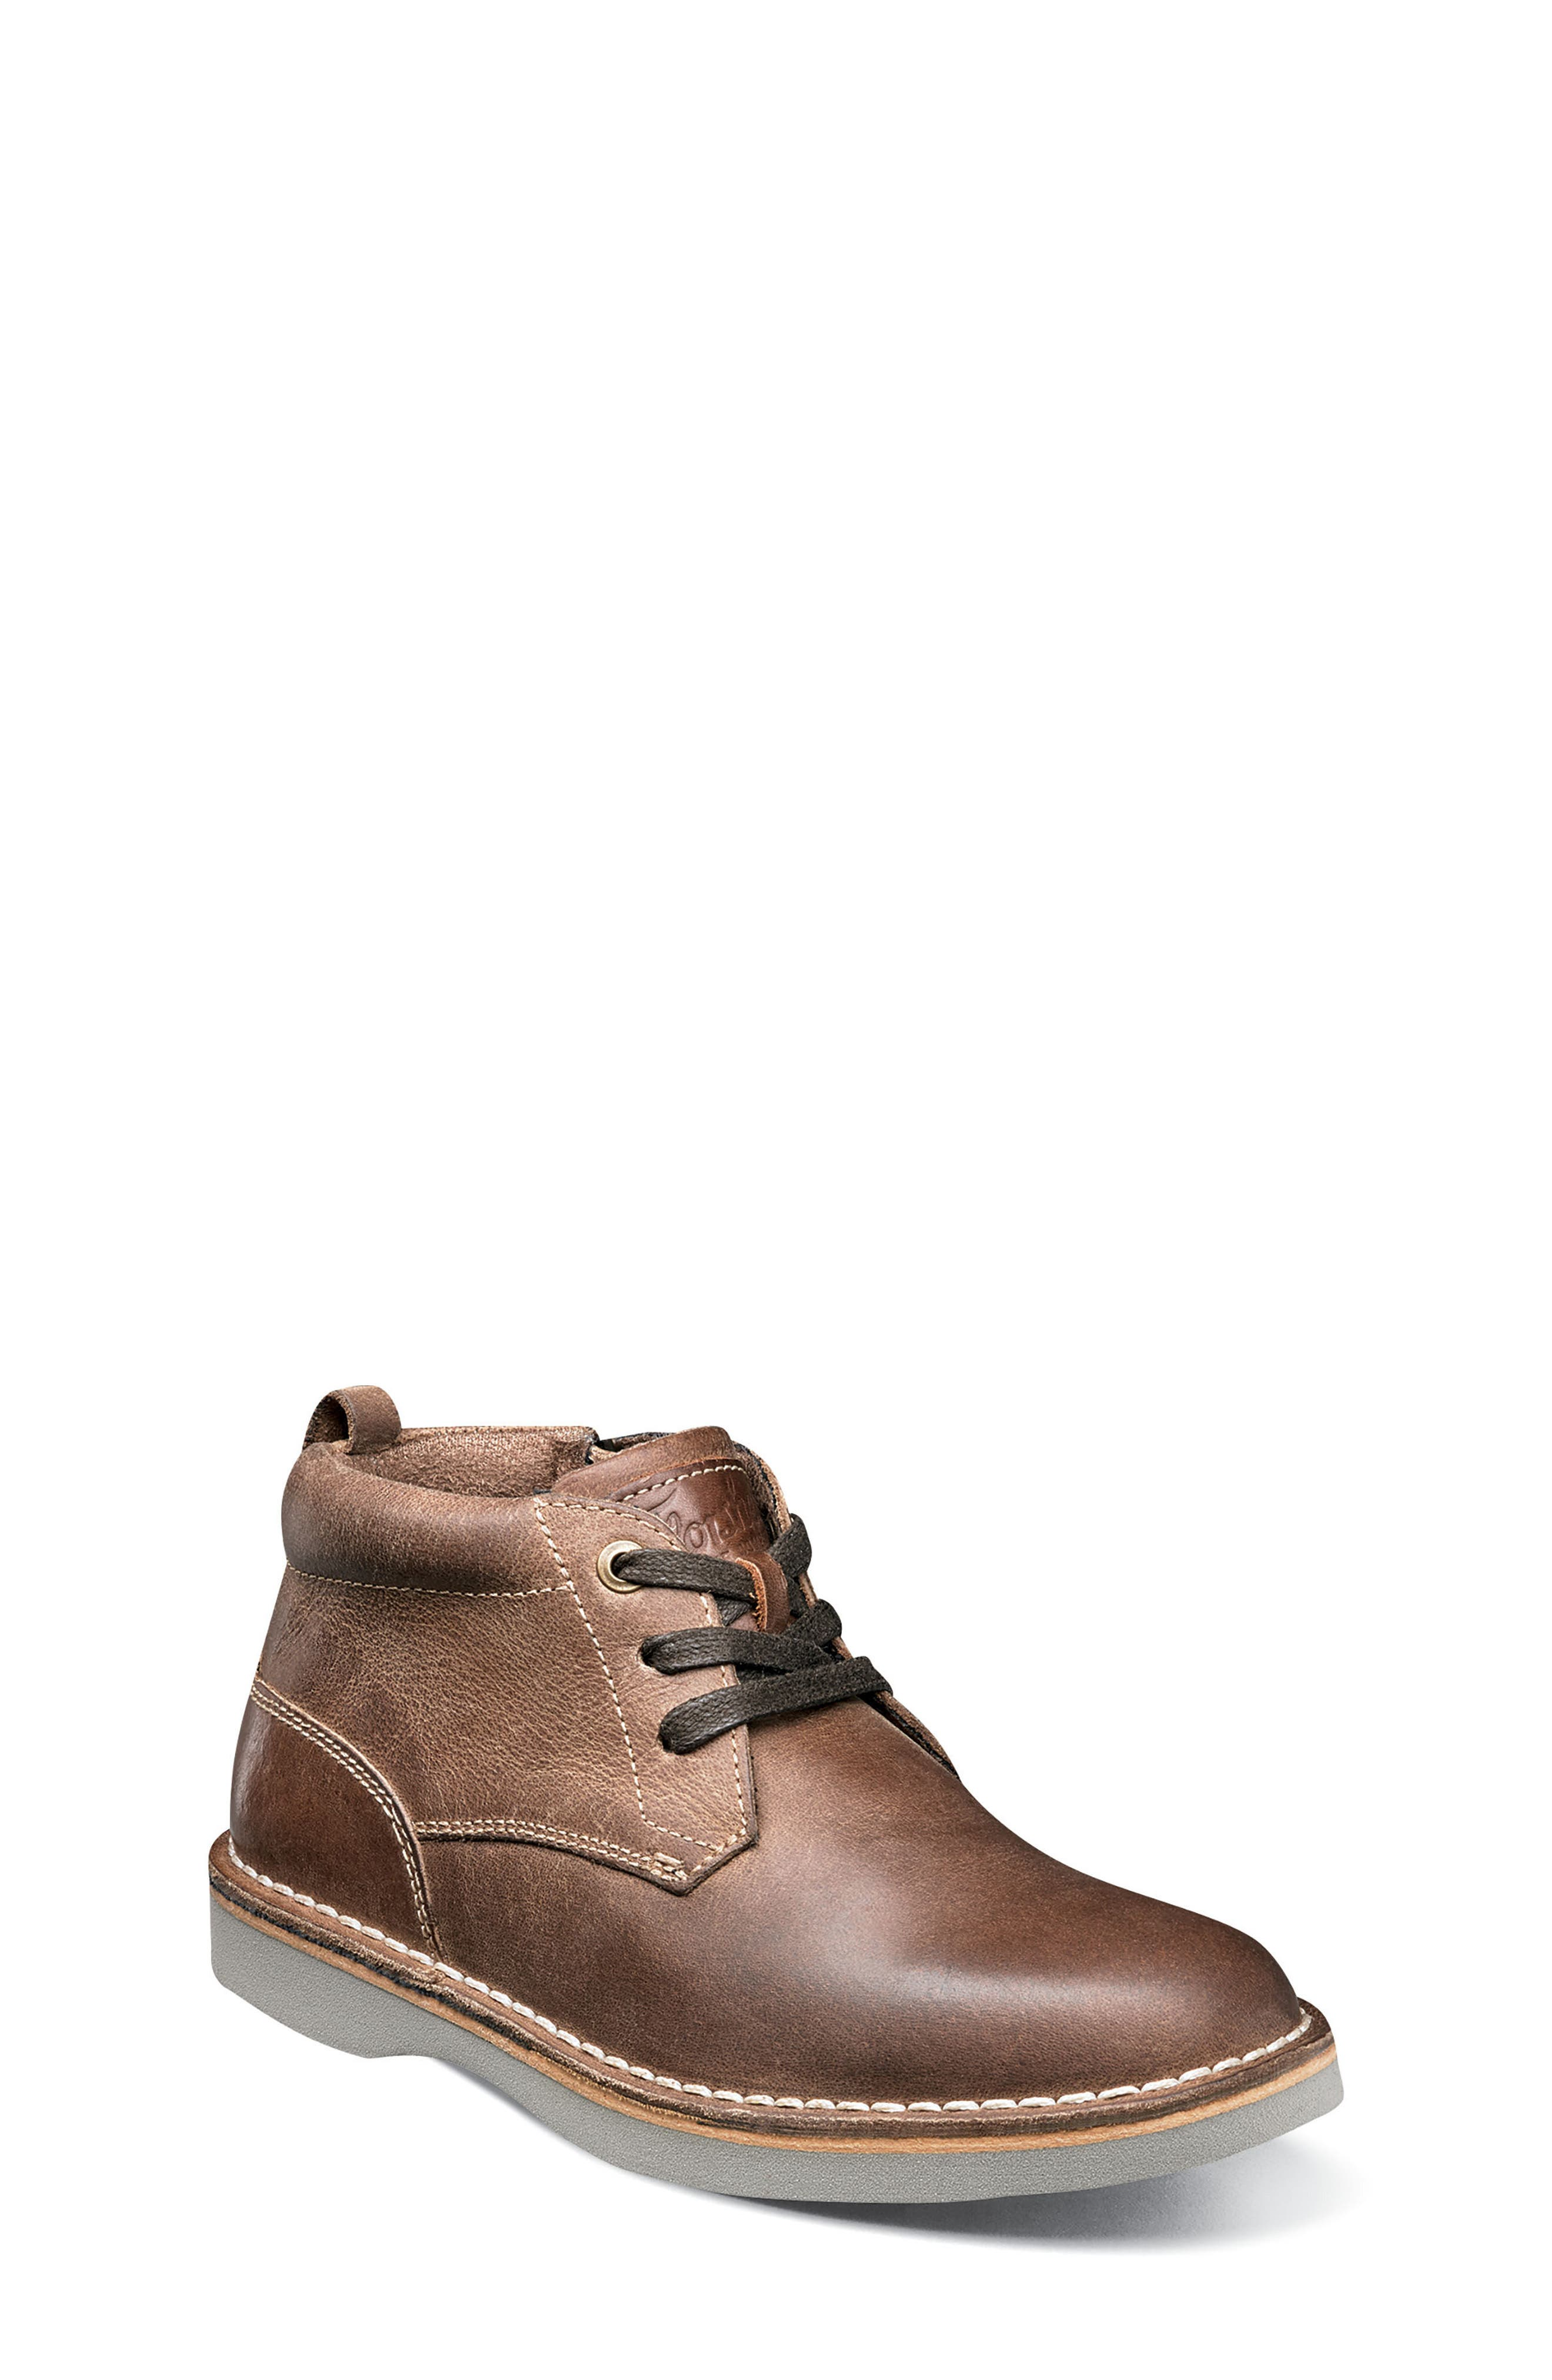 Chukka Boot,                         Main,                         color, BROWN CRAZY HORSE LEATHER